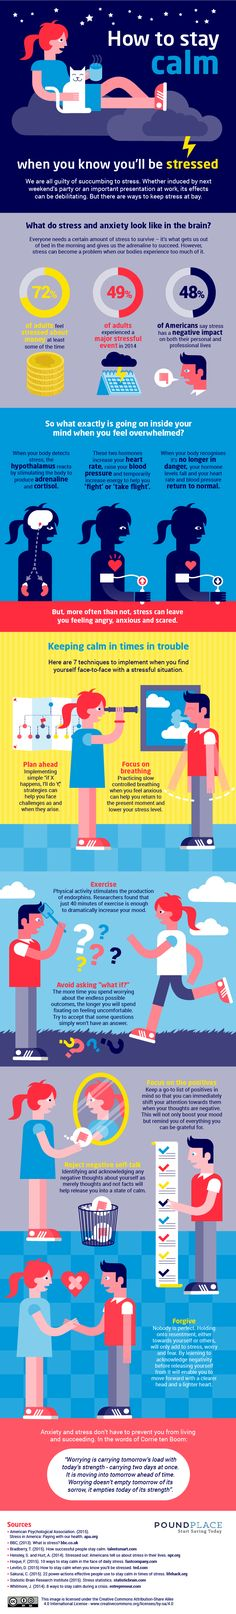 How to Stay Calm When You Know You'll Be Stressed [Infographic], via @HubSpot